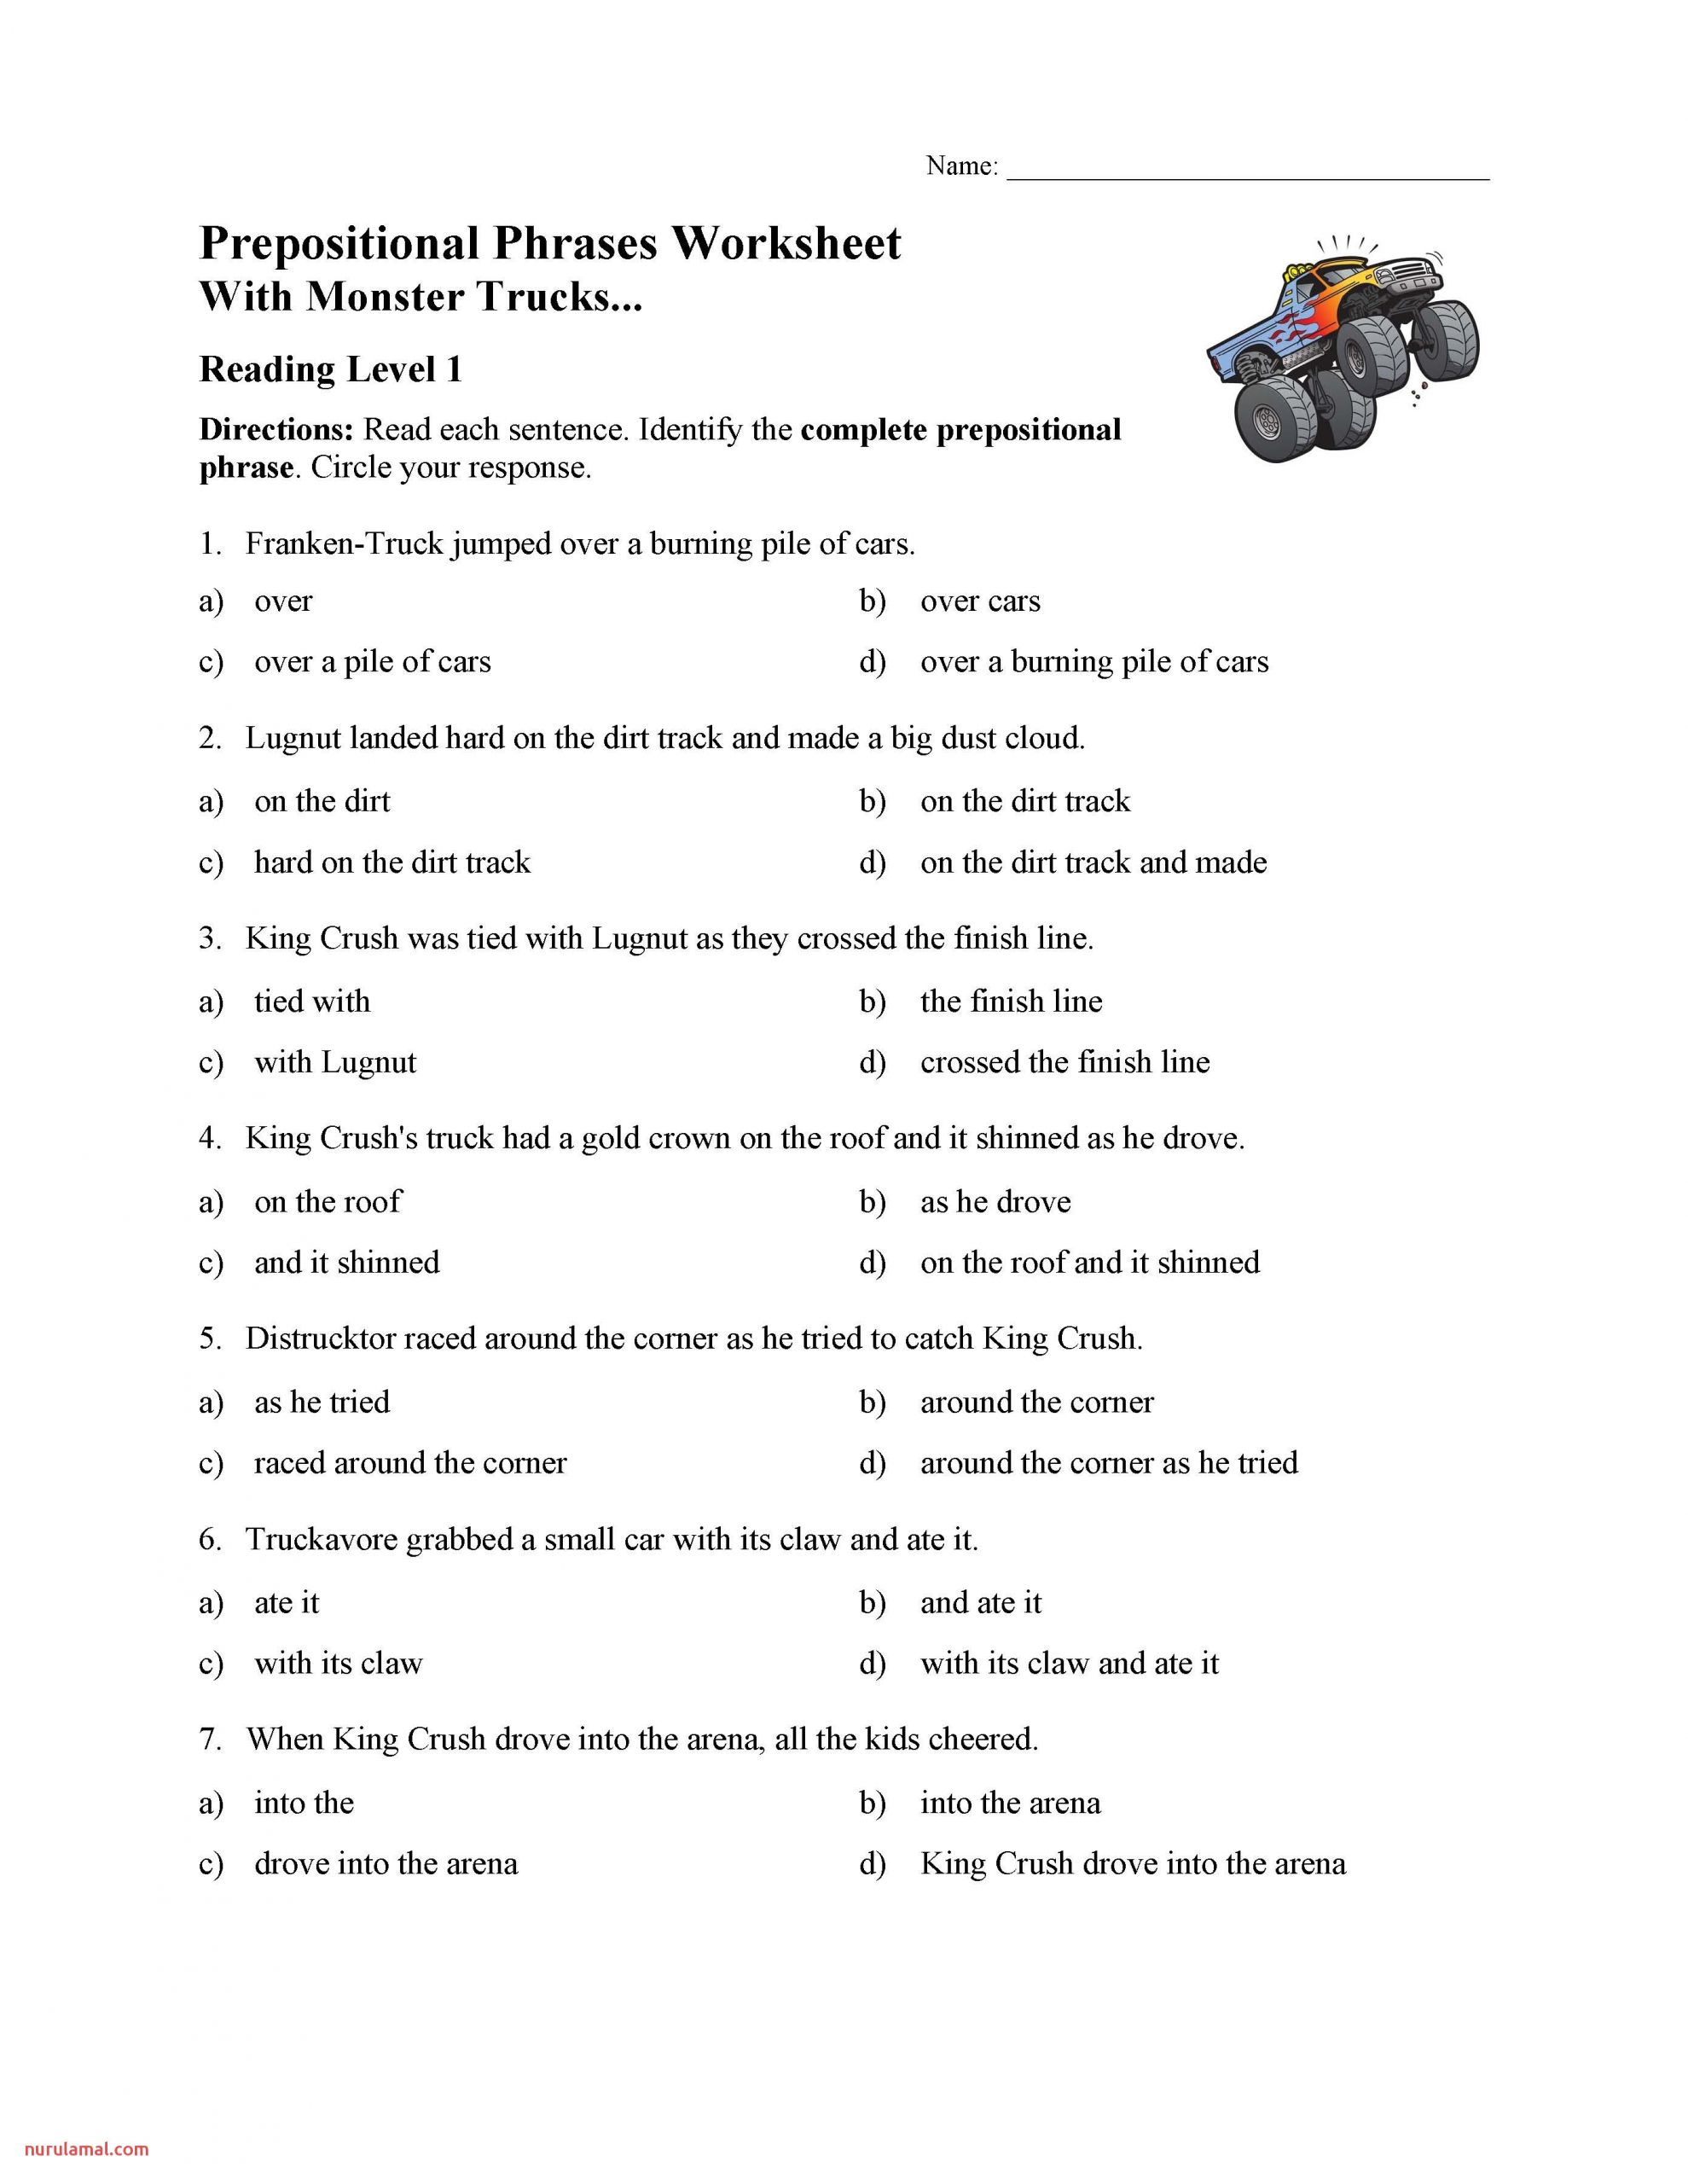 prepositional phrases worksheet reading level preview 5th grade decimal division word problems thanksgiving math coloring worksheets addition tracing templates for toddlers prehension